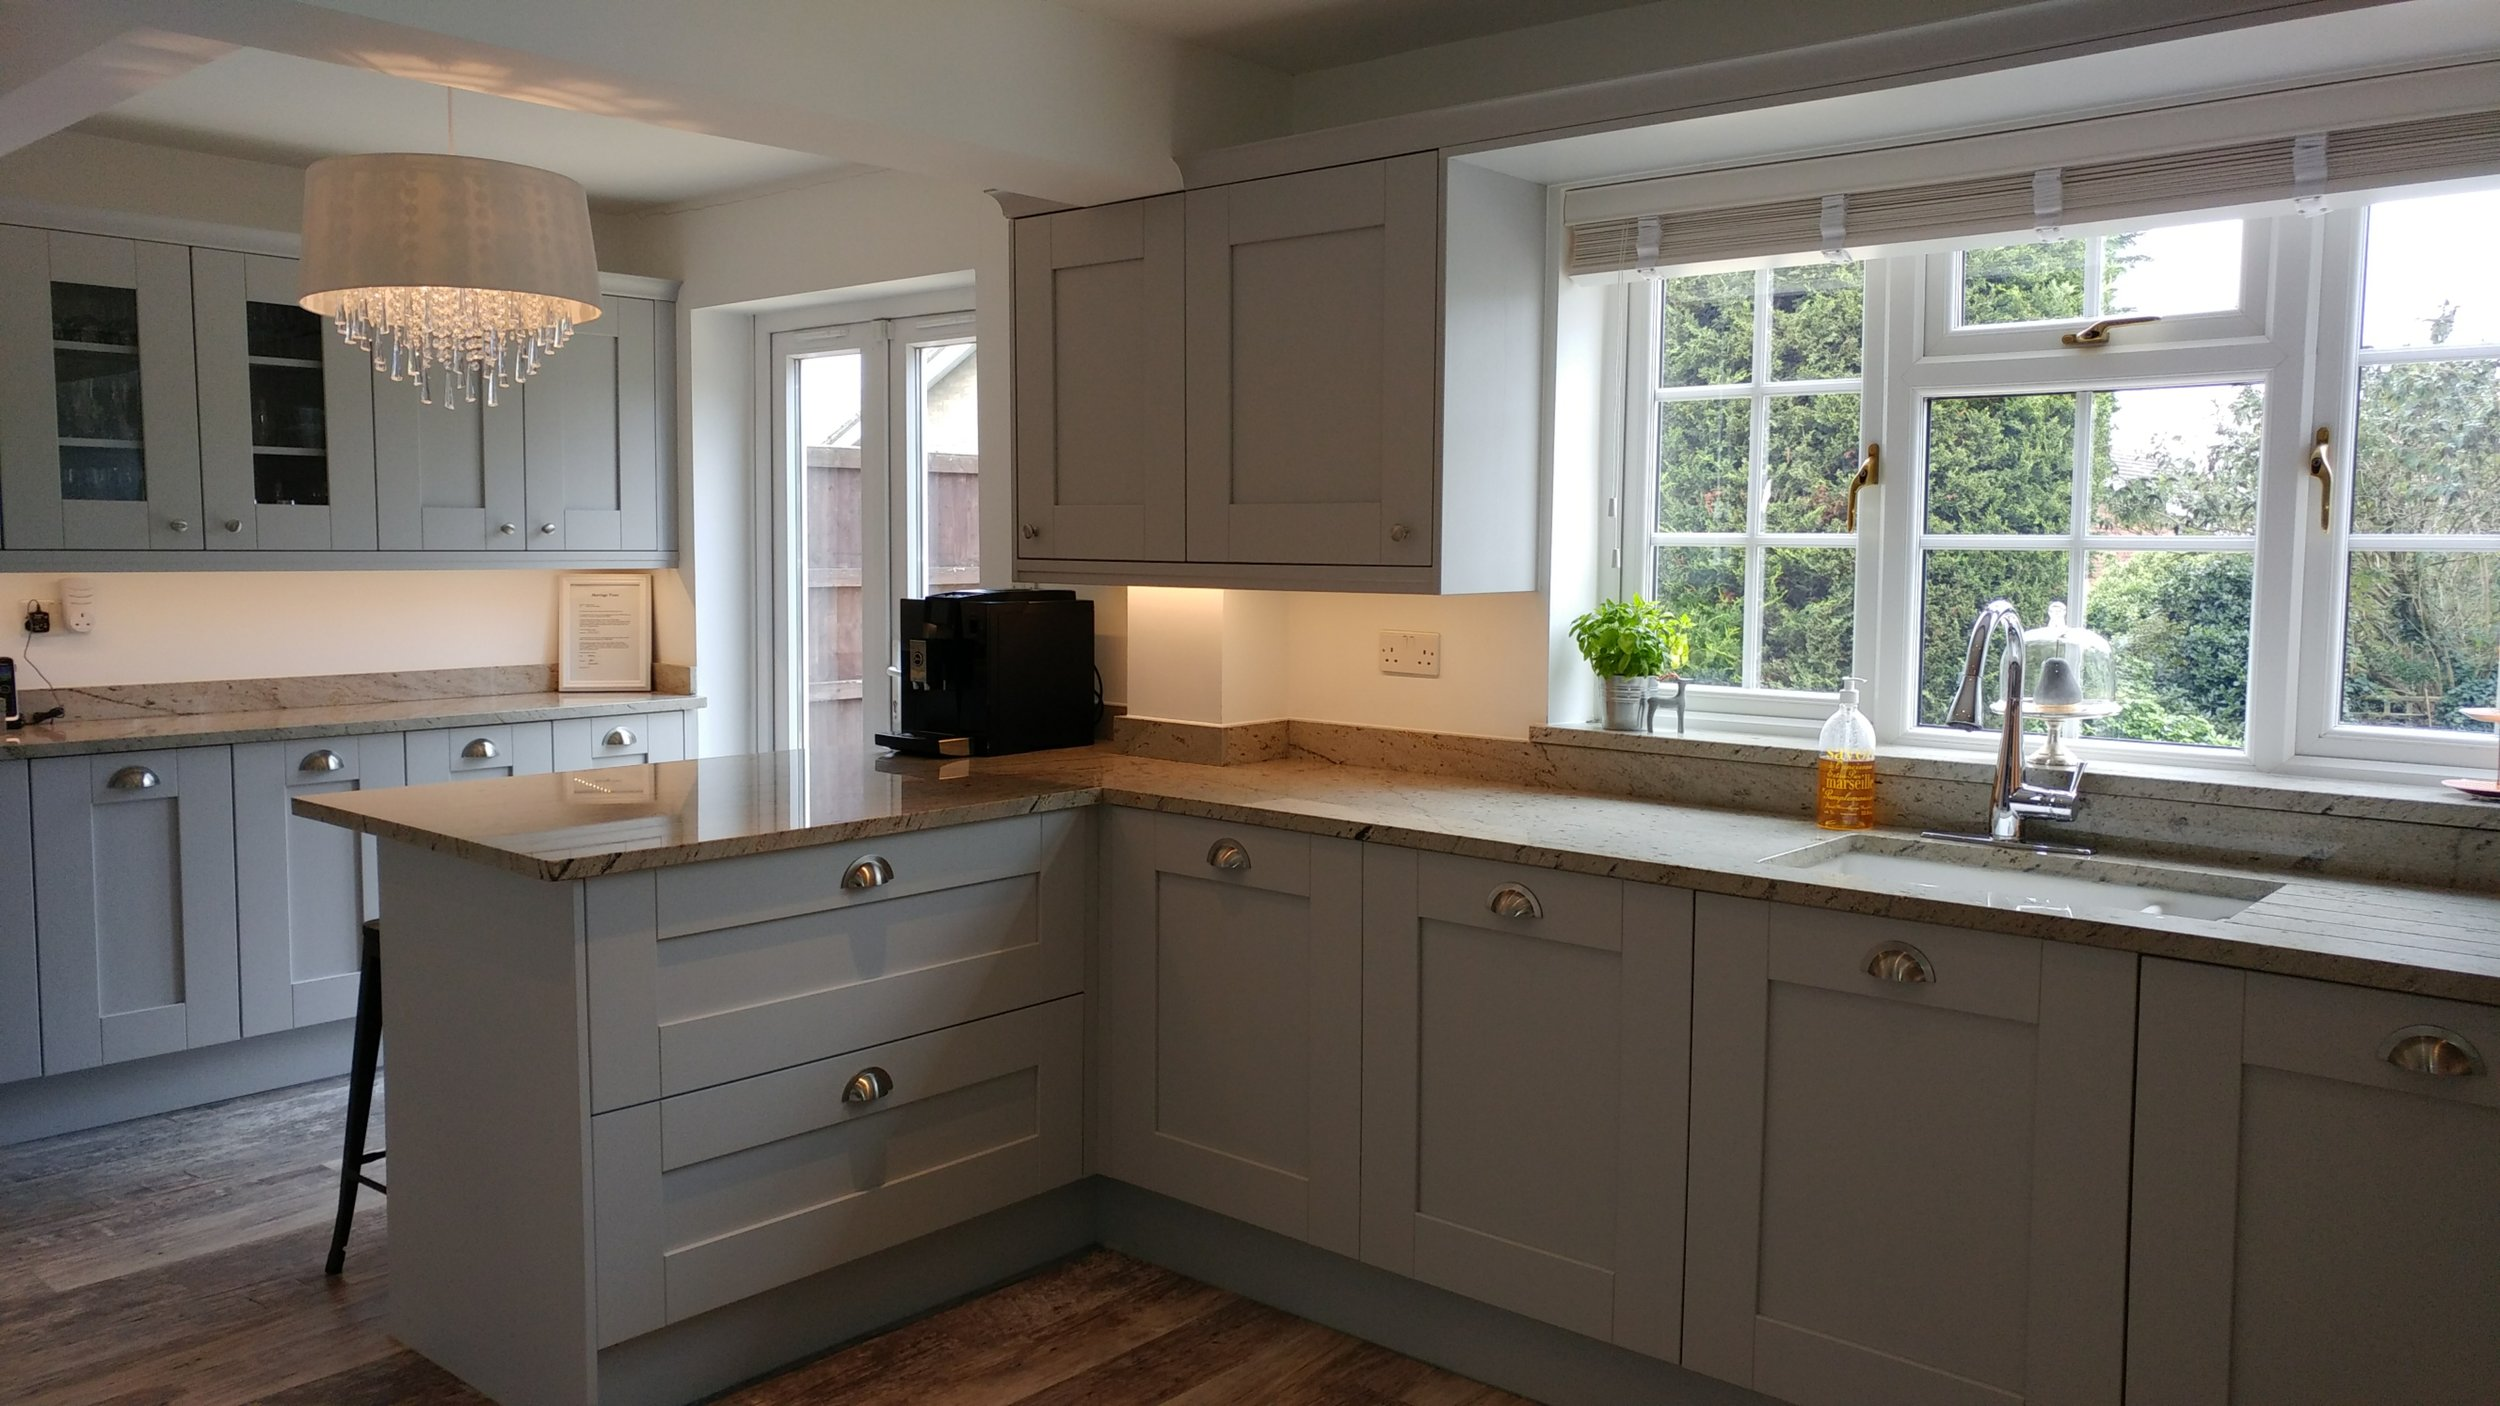 Painted Shaker Kitchen - Bedfordshire